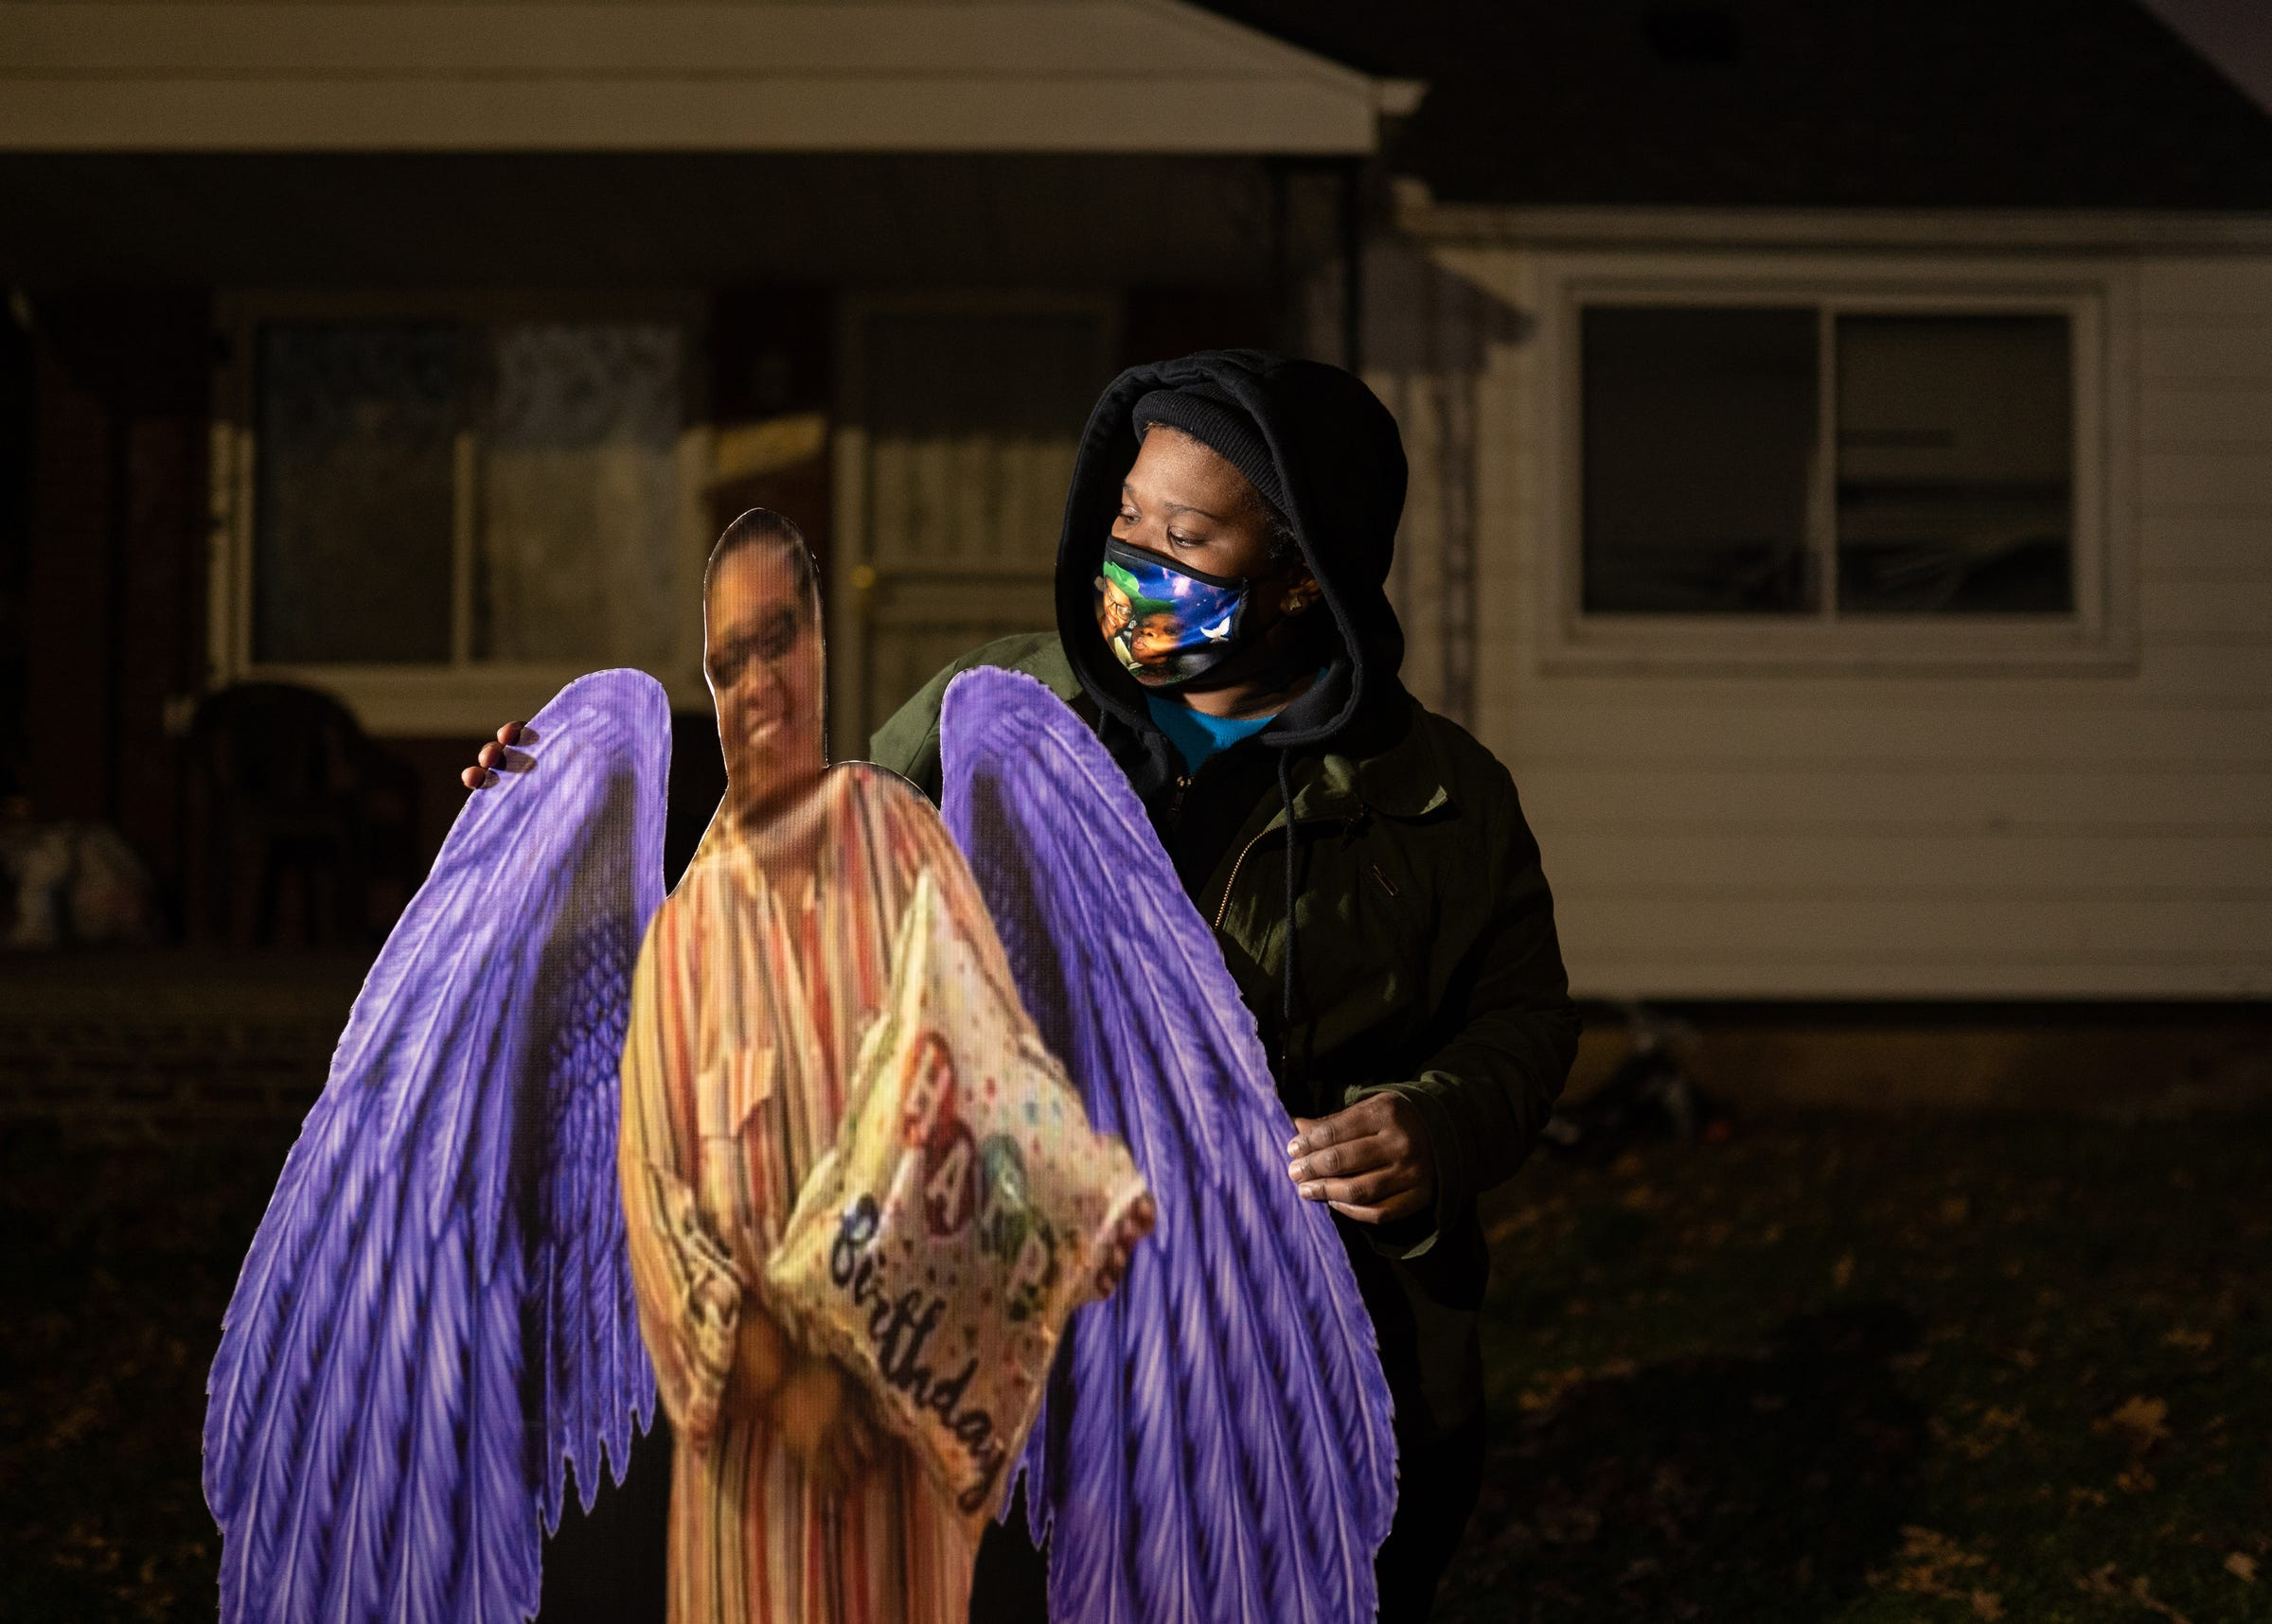 Juliette Gilbert, 33, of Detroit stands with a cutout of her mother, the late Monique Baldridge, 52, who died due to COVID-19 outside of her home in Detroit on Friday, December 11, 2020. Her mother fell ill in March 2020 and was hospitalized for about two weeks. Gilbert said her mother lived with her and her three kids.